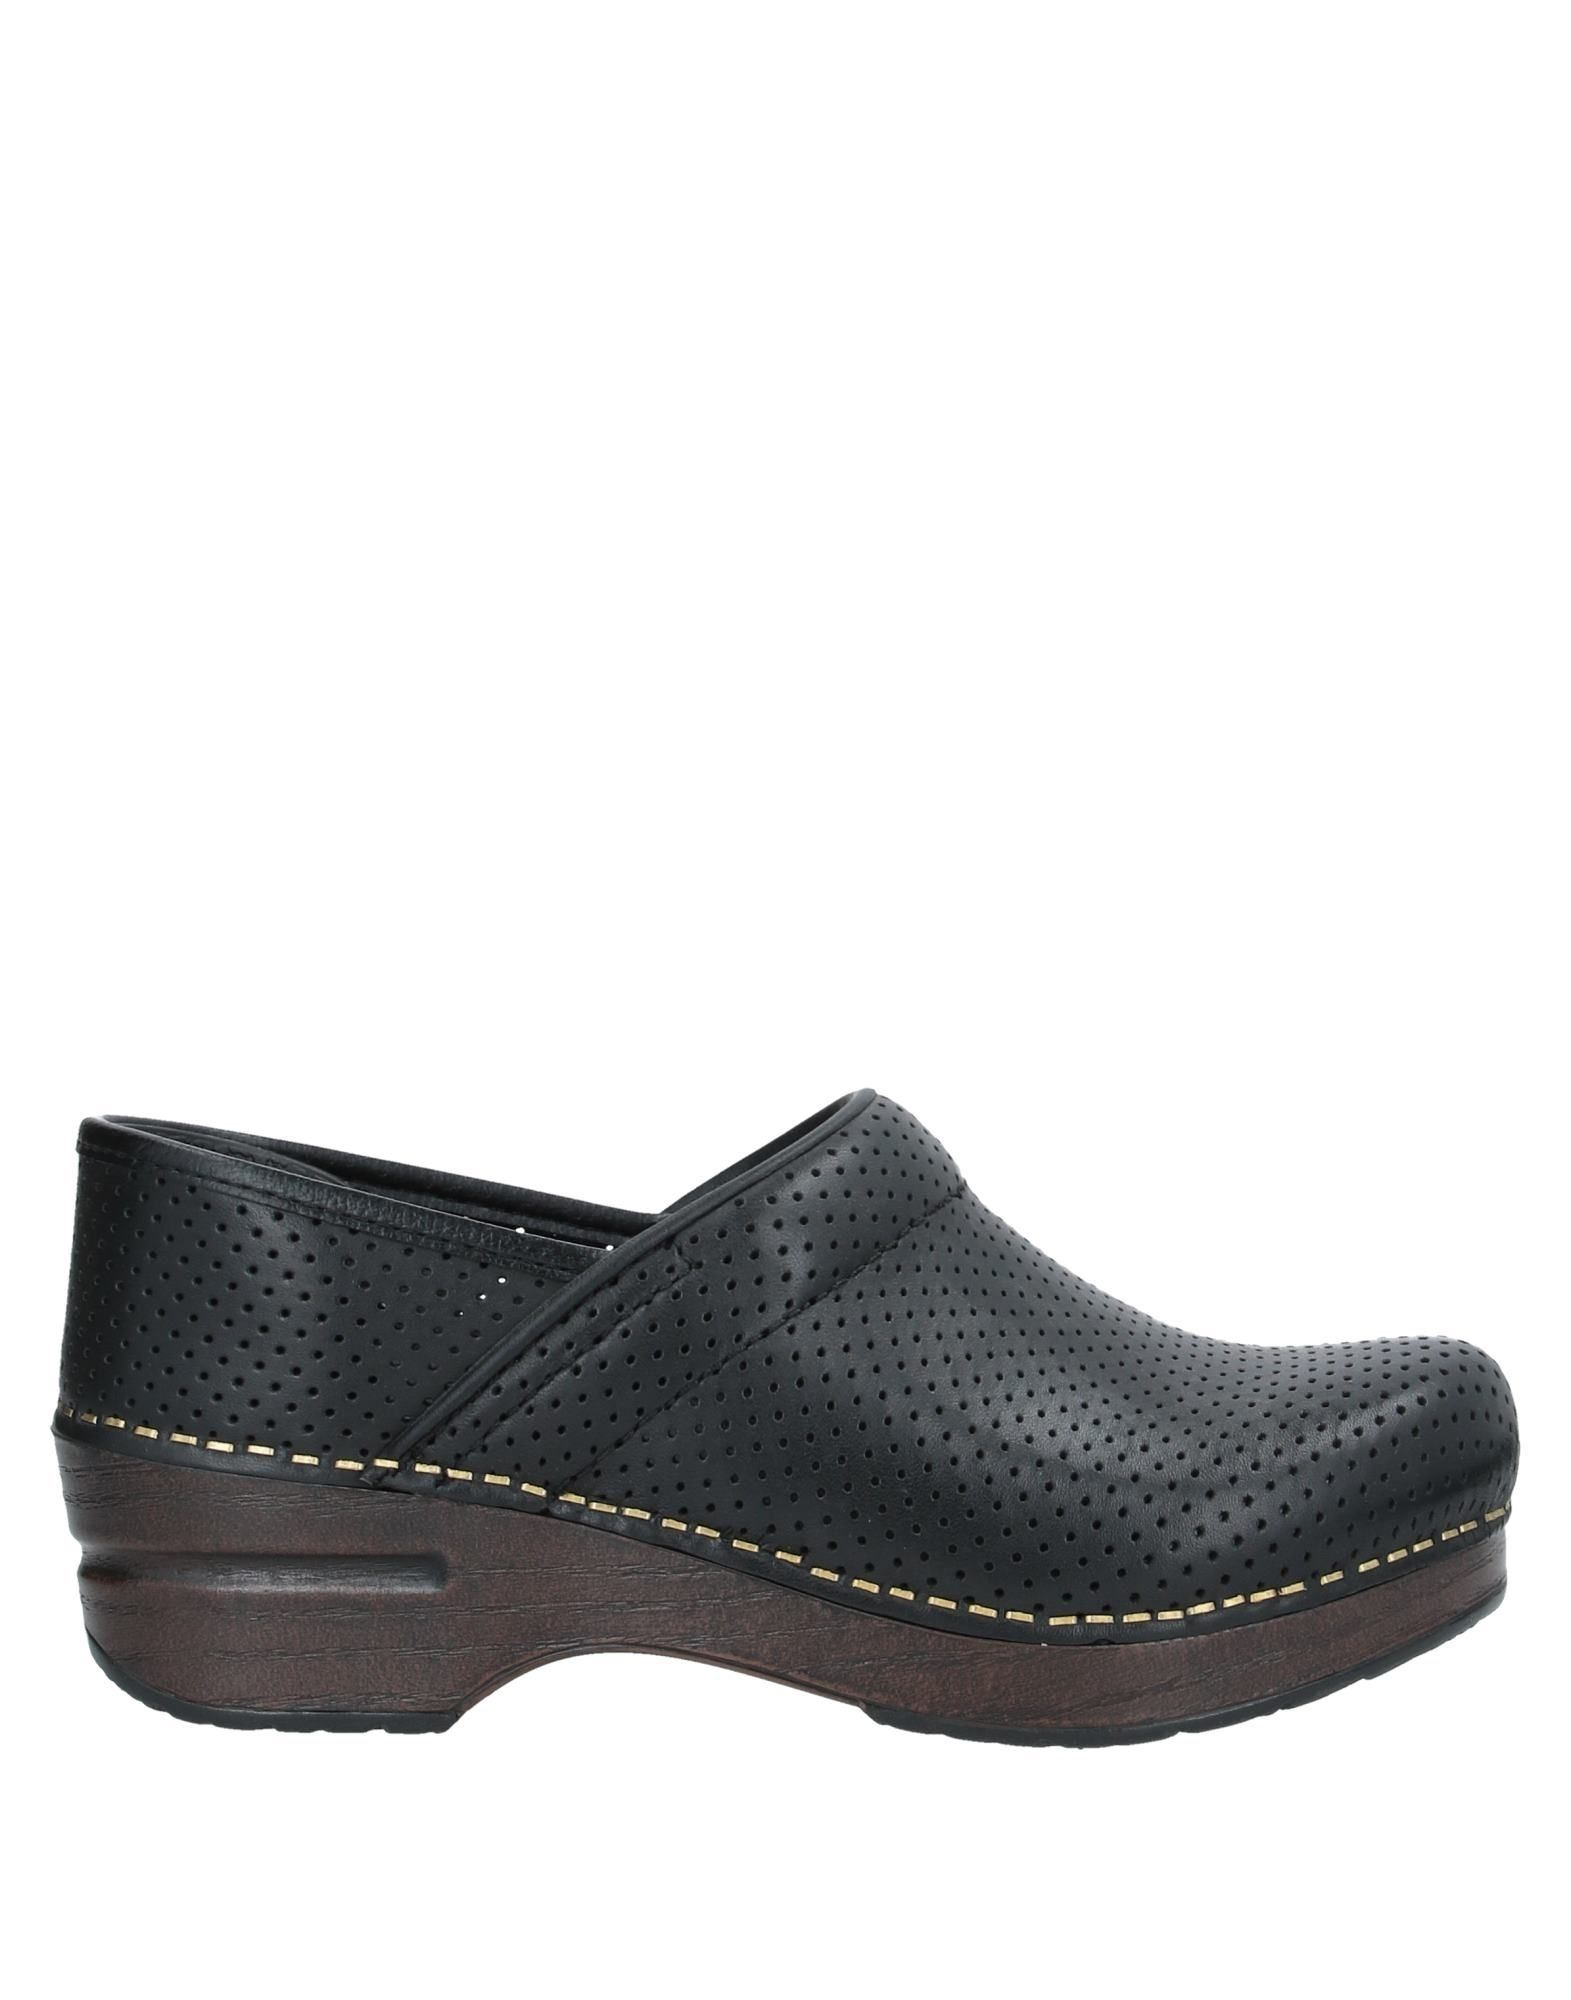 DANSKO Loafers. openwork, no appliqués, solid color, round toeline, square heel, leather lining, rubber cleated sole, contains non-textile parts of animal origin. Soft Leather